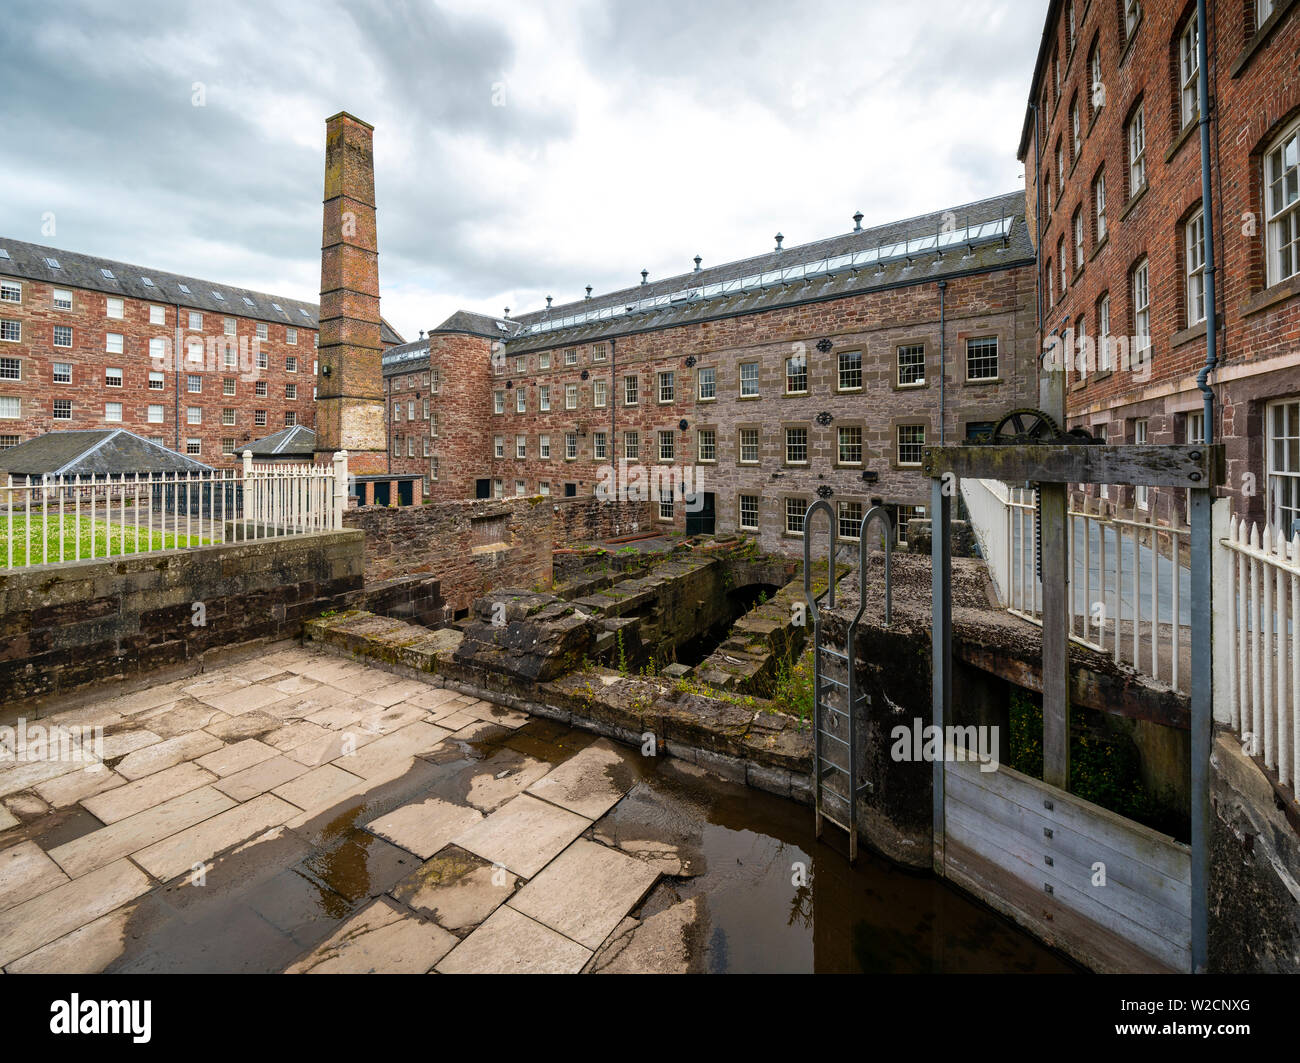 View of historic preserved Stanley Mills  former cotton mills factory in Stanley, Perthshire, Scotland, UK Stock Photo